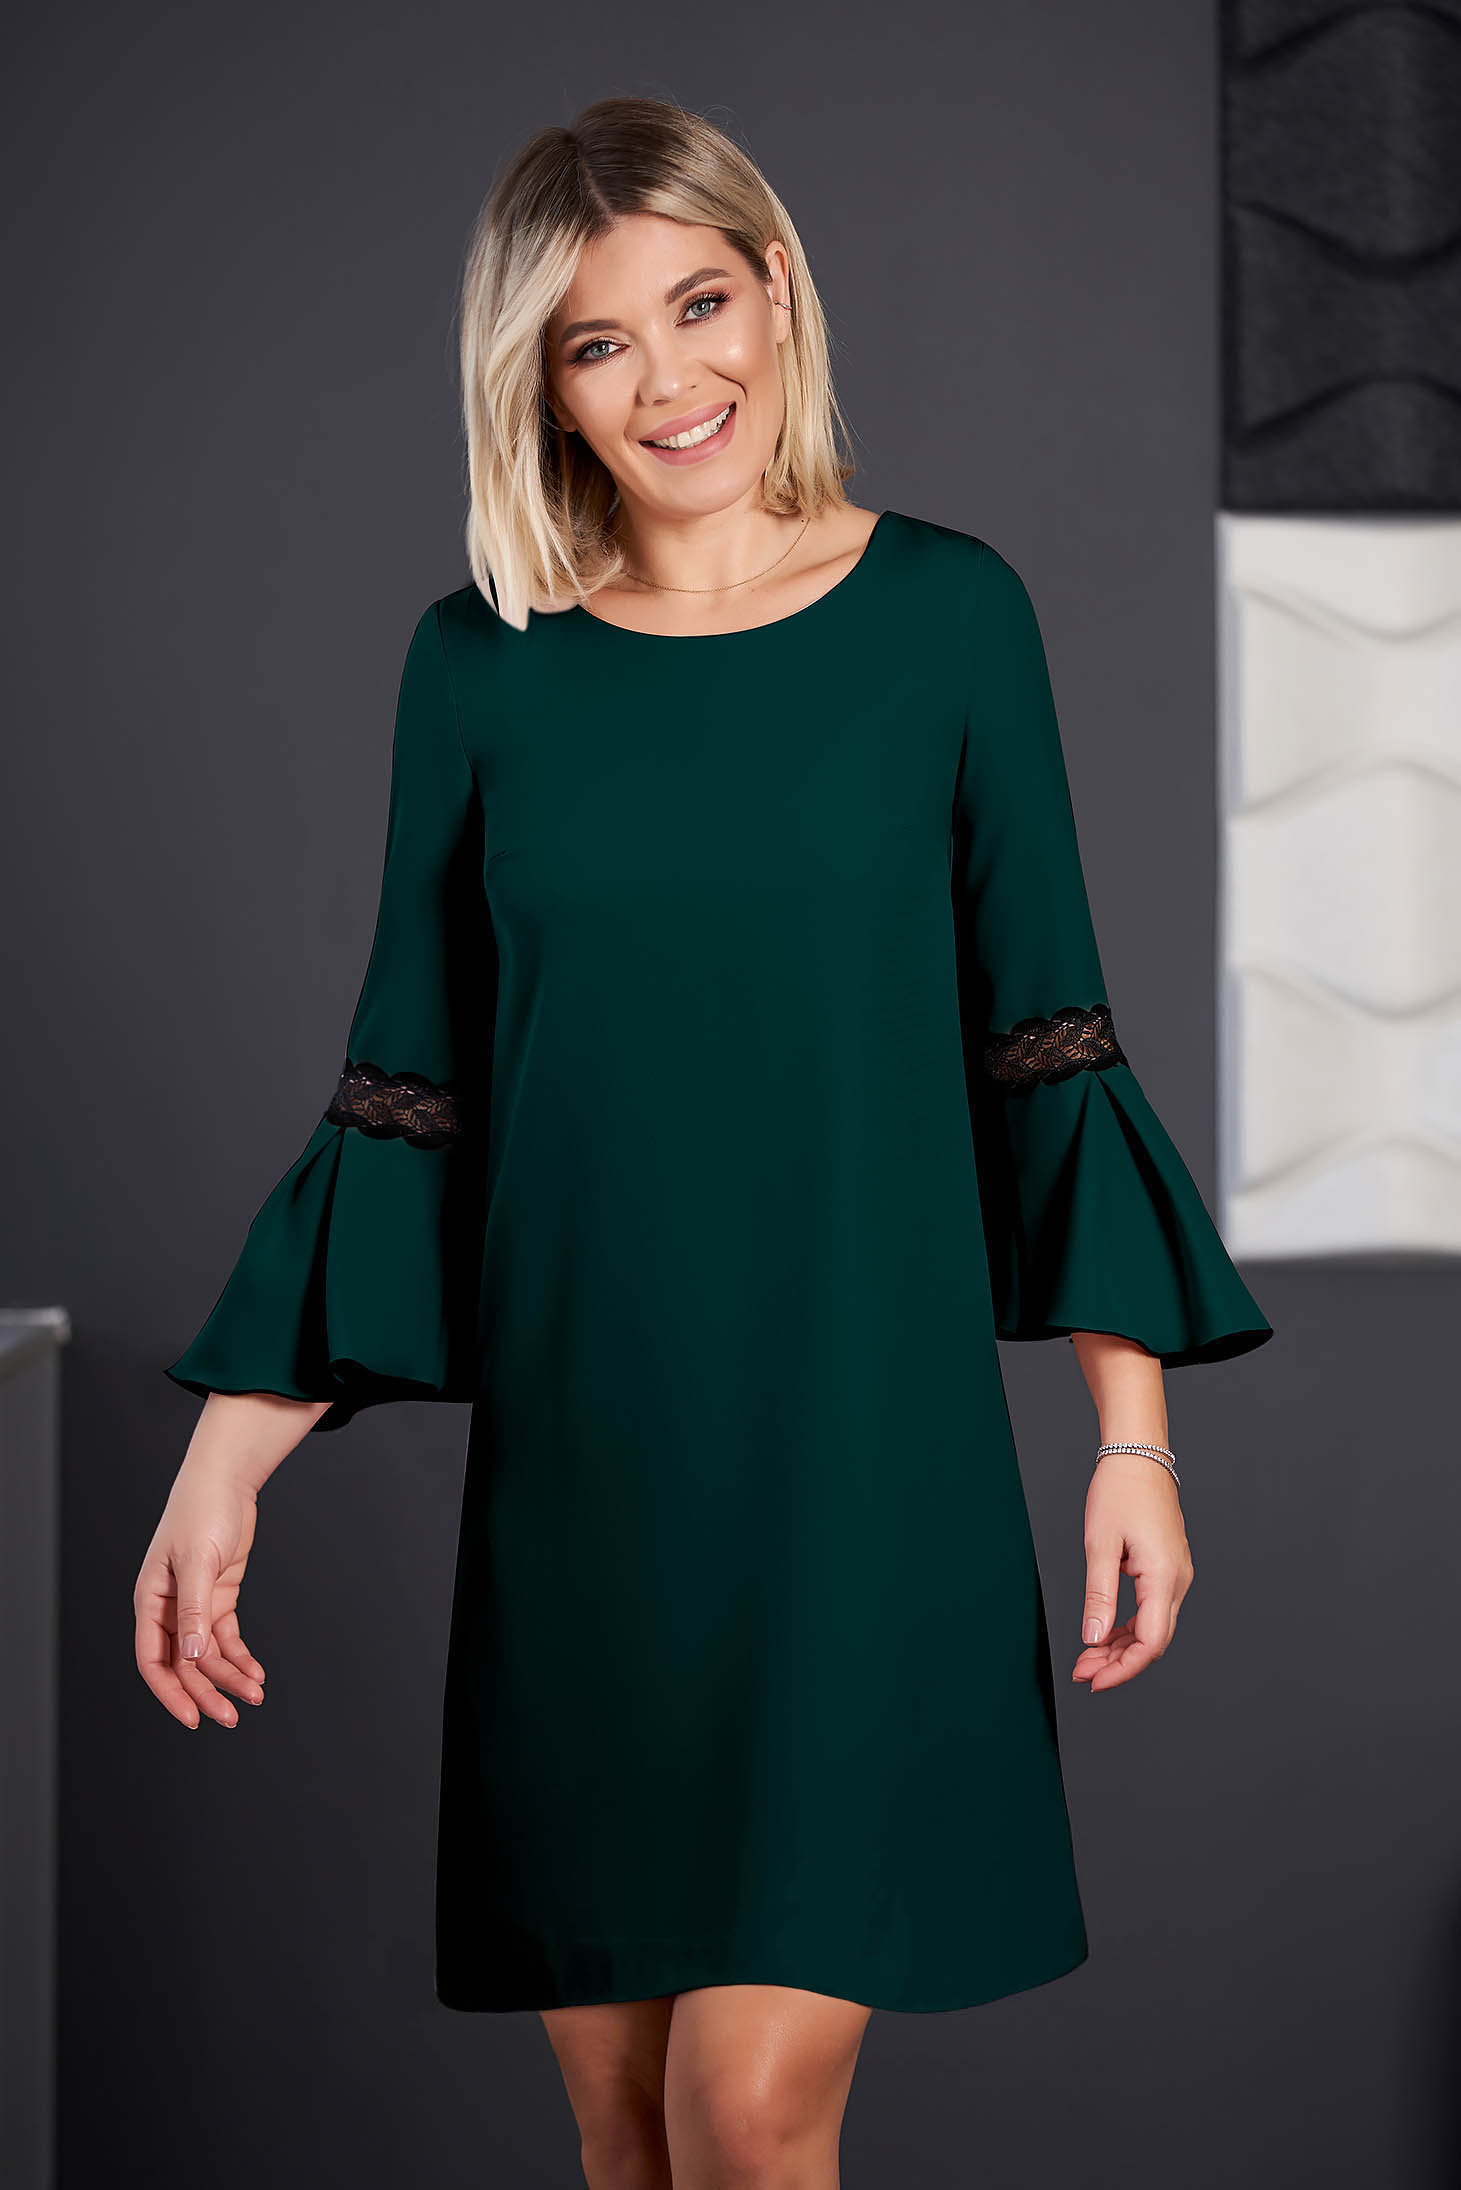 StarShinerS dirty green dress elegant short cut cloth neckline with 3/4 sleeves with bell sleeve with embroidery details